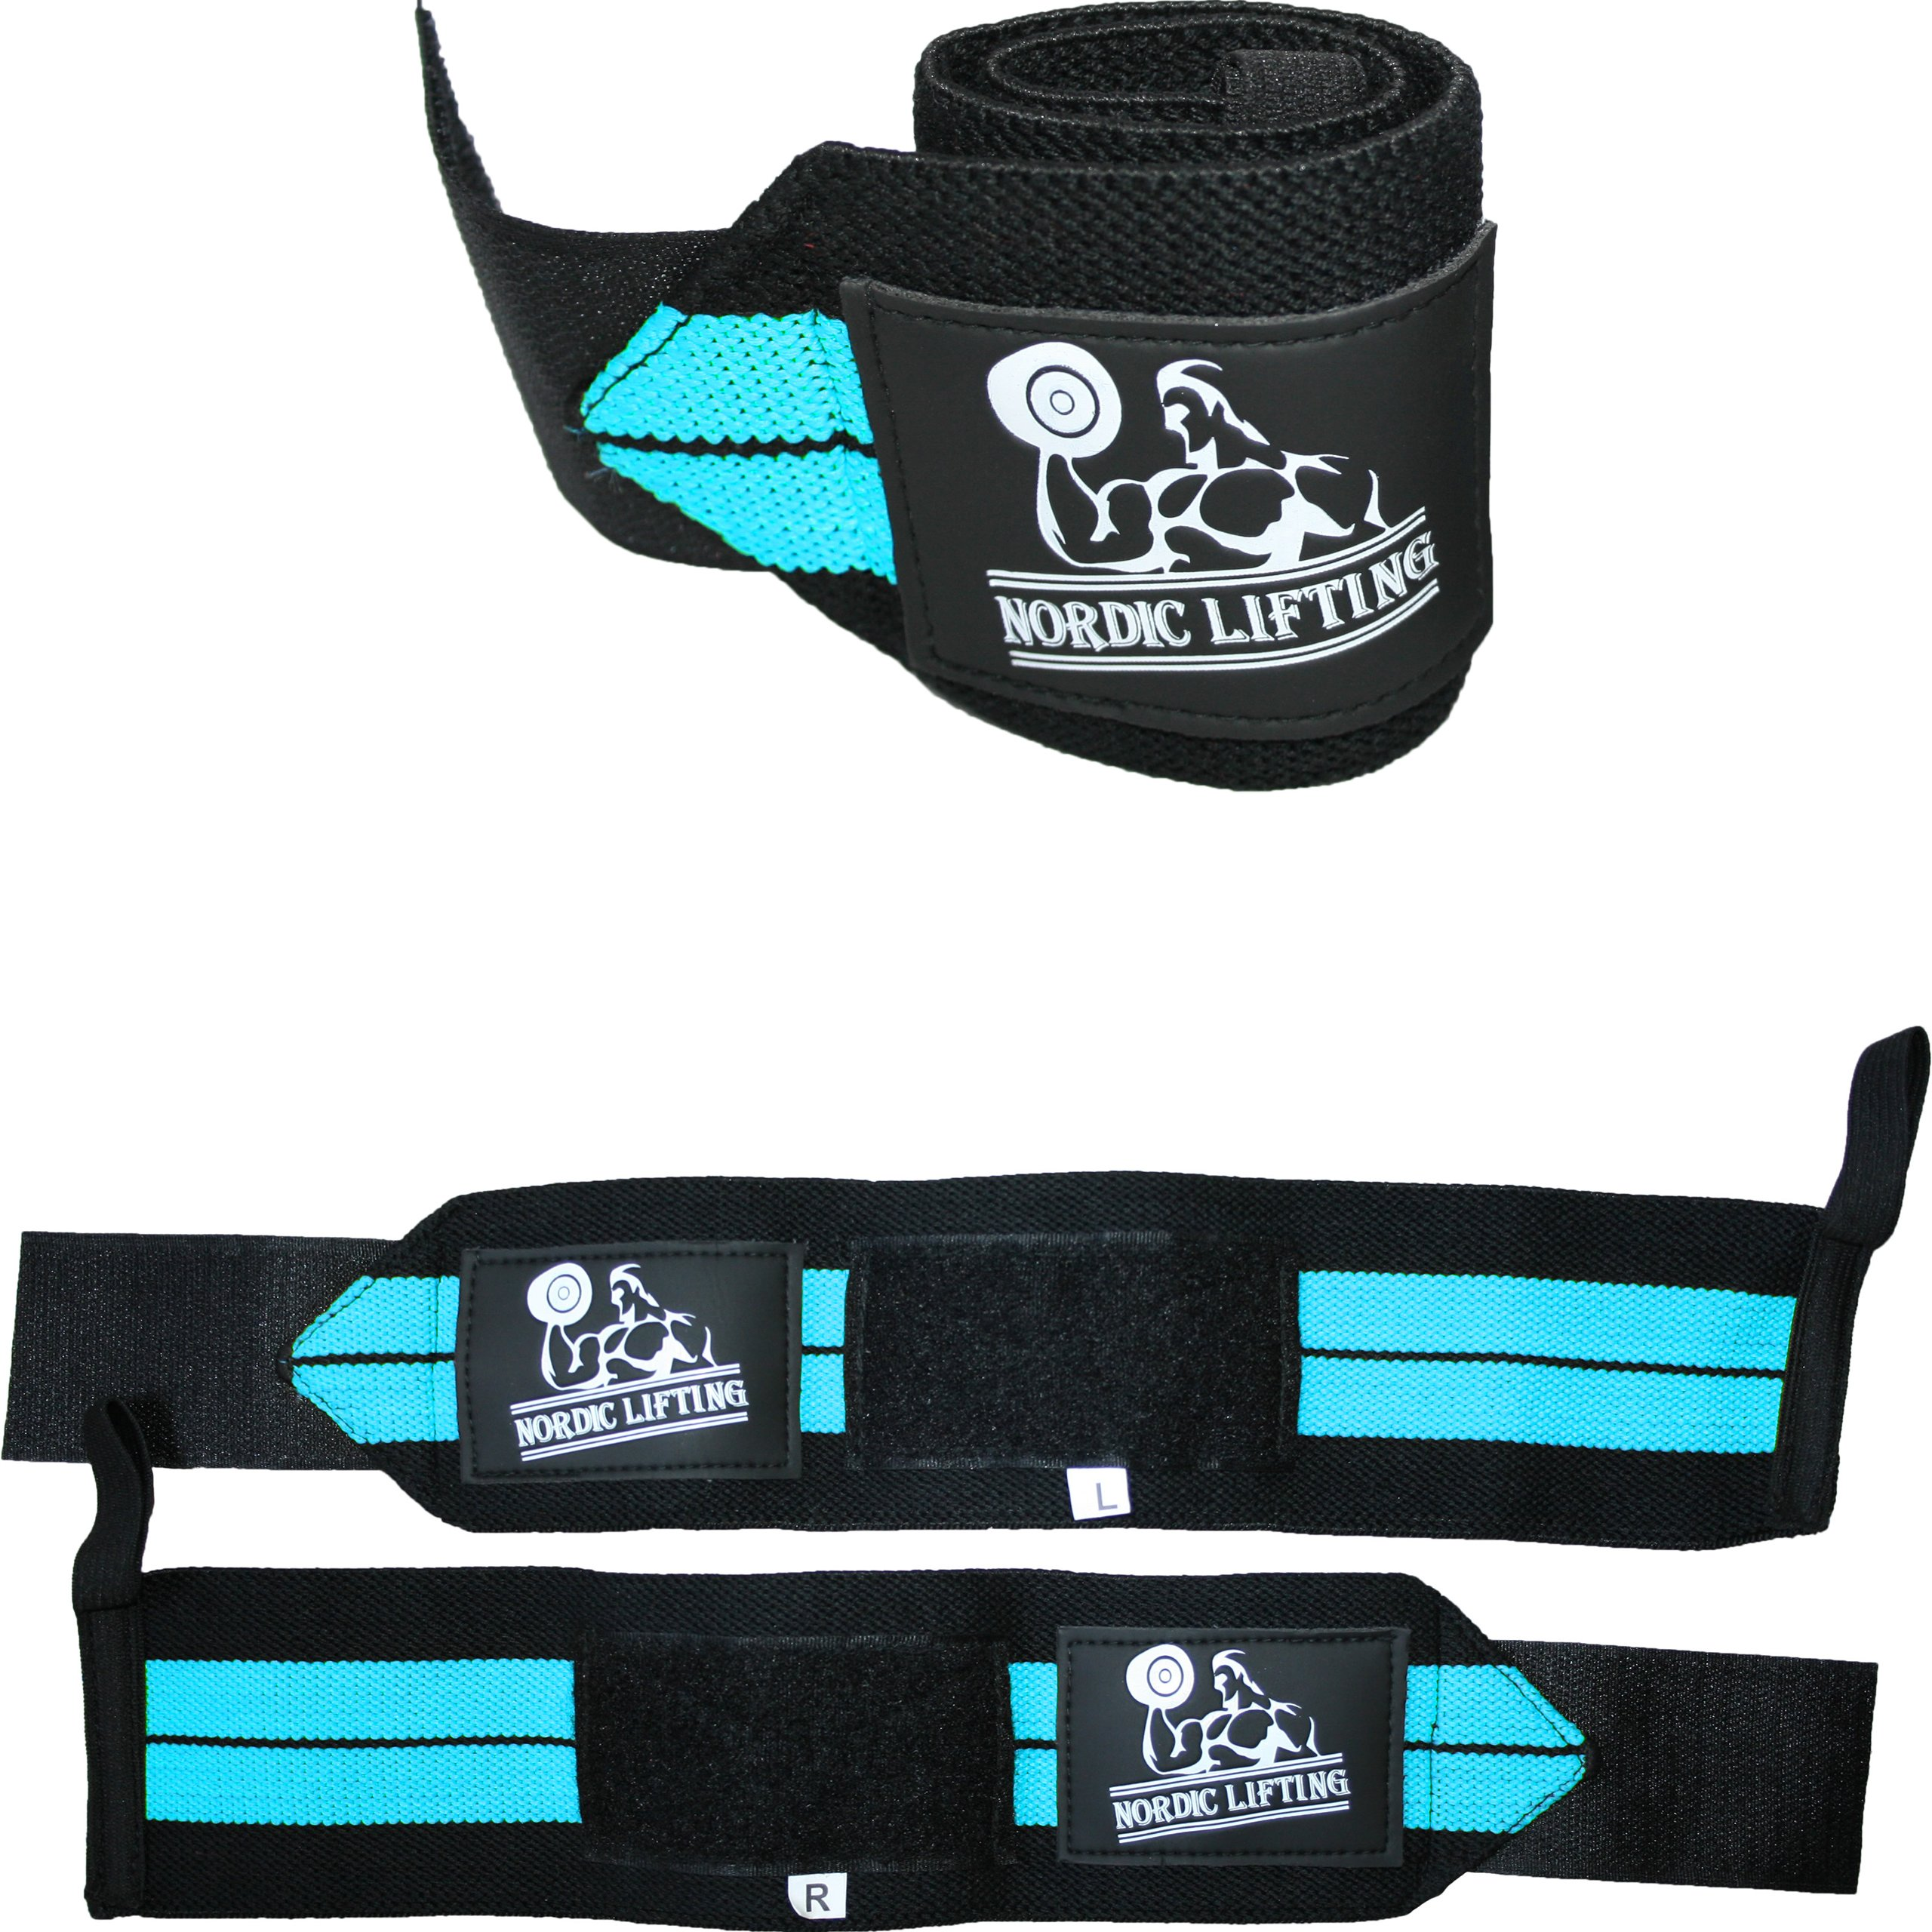 Wrist Wraps (1 Pair/2 Wraps) for Weightlifting/Cross Training/Powerlifting/Bodybuilding-Women & Men-Premium Quality Equipment & Accessories Avoid Injury in Weight Lifting-(Aqua Blue)-1 Year Warranty